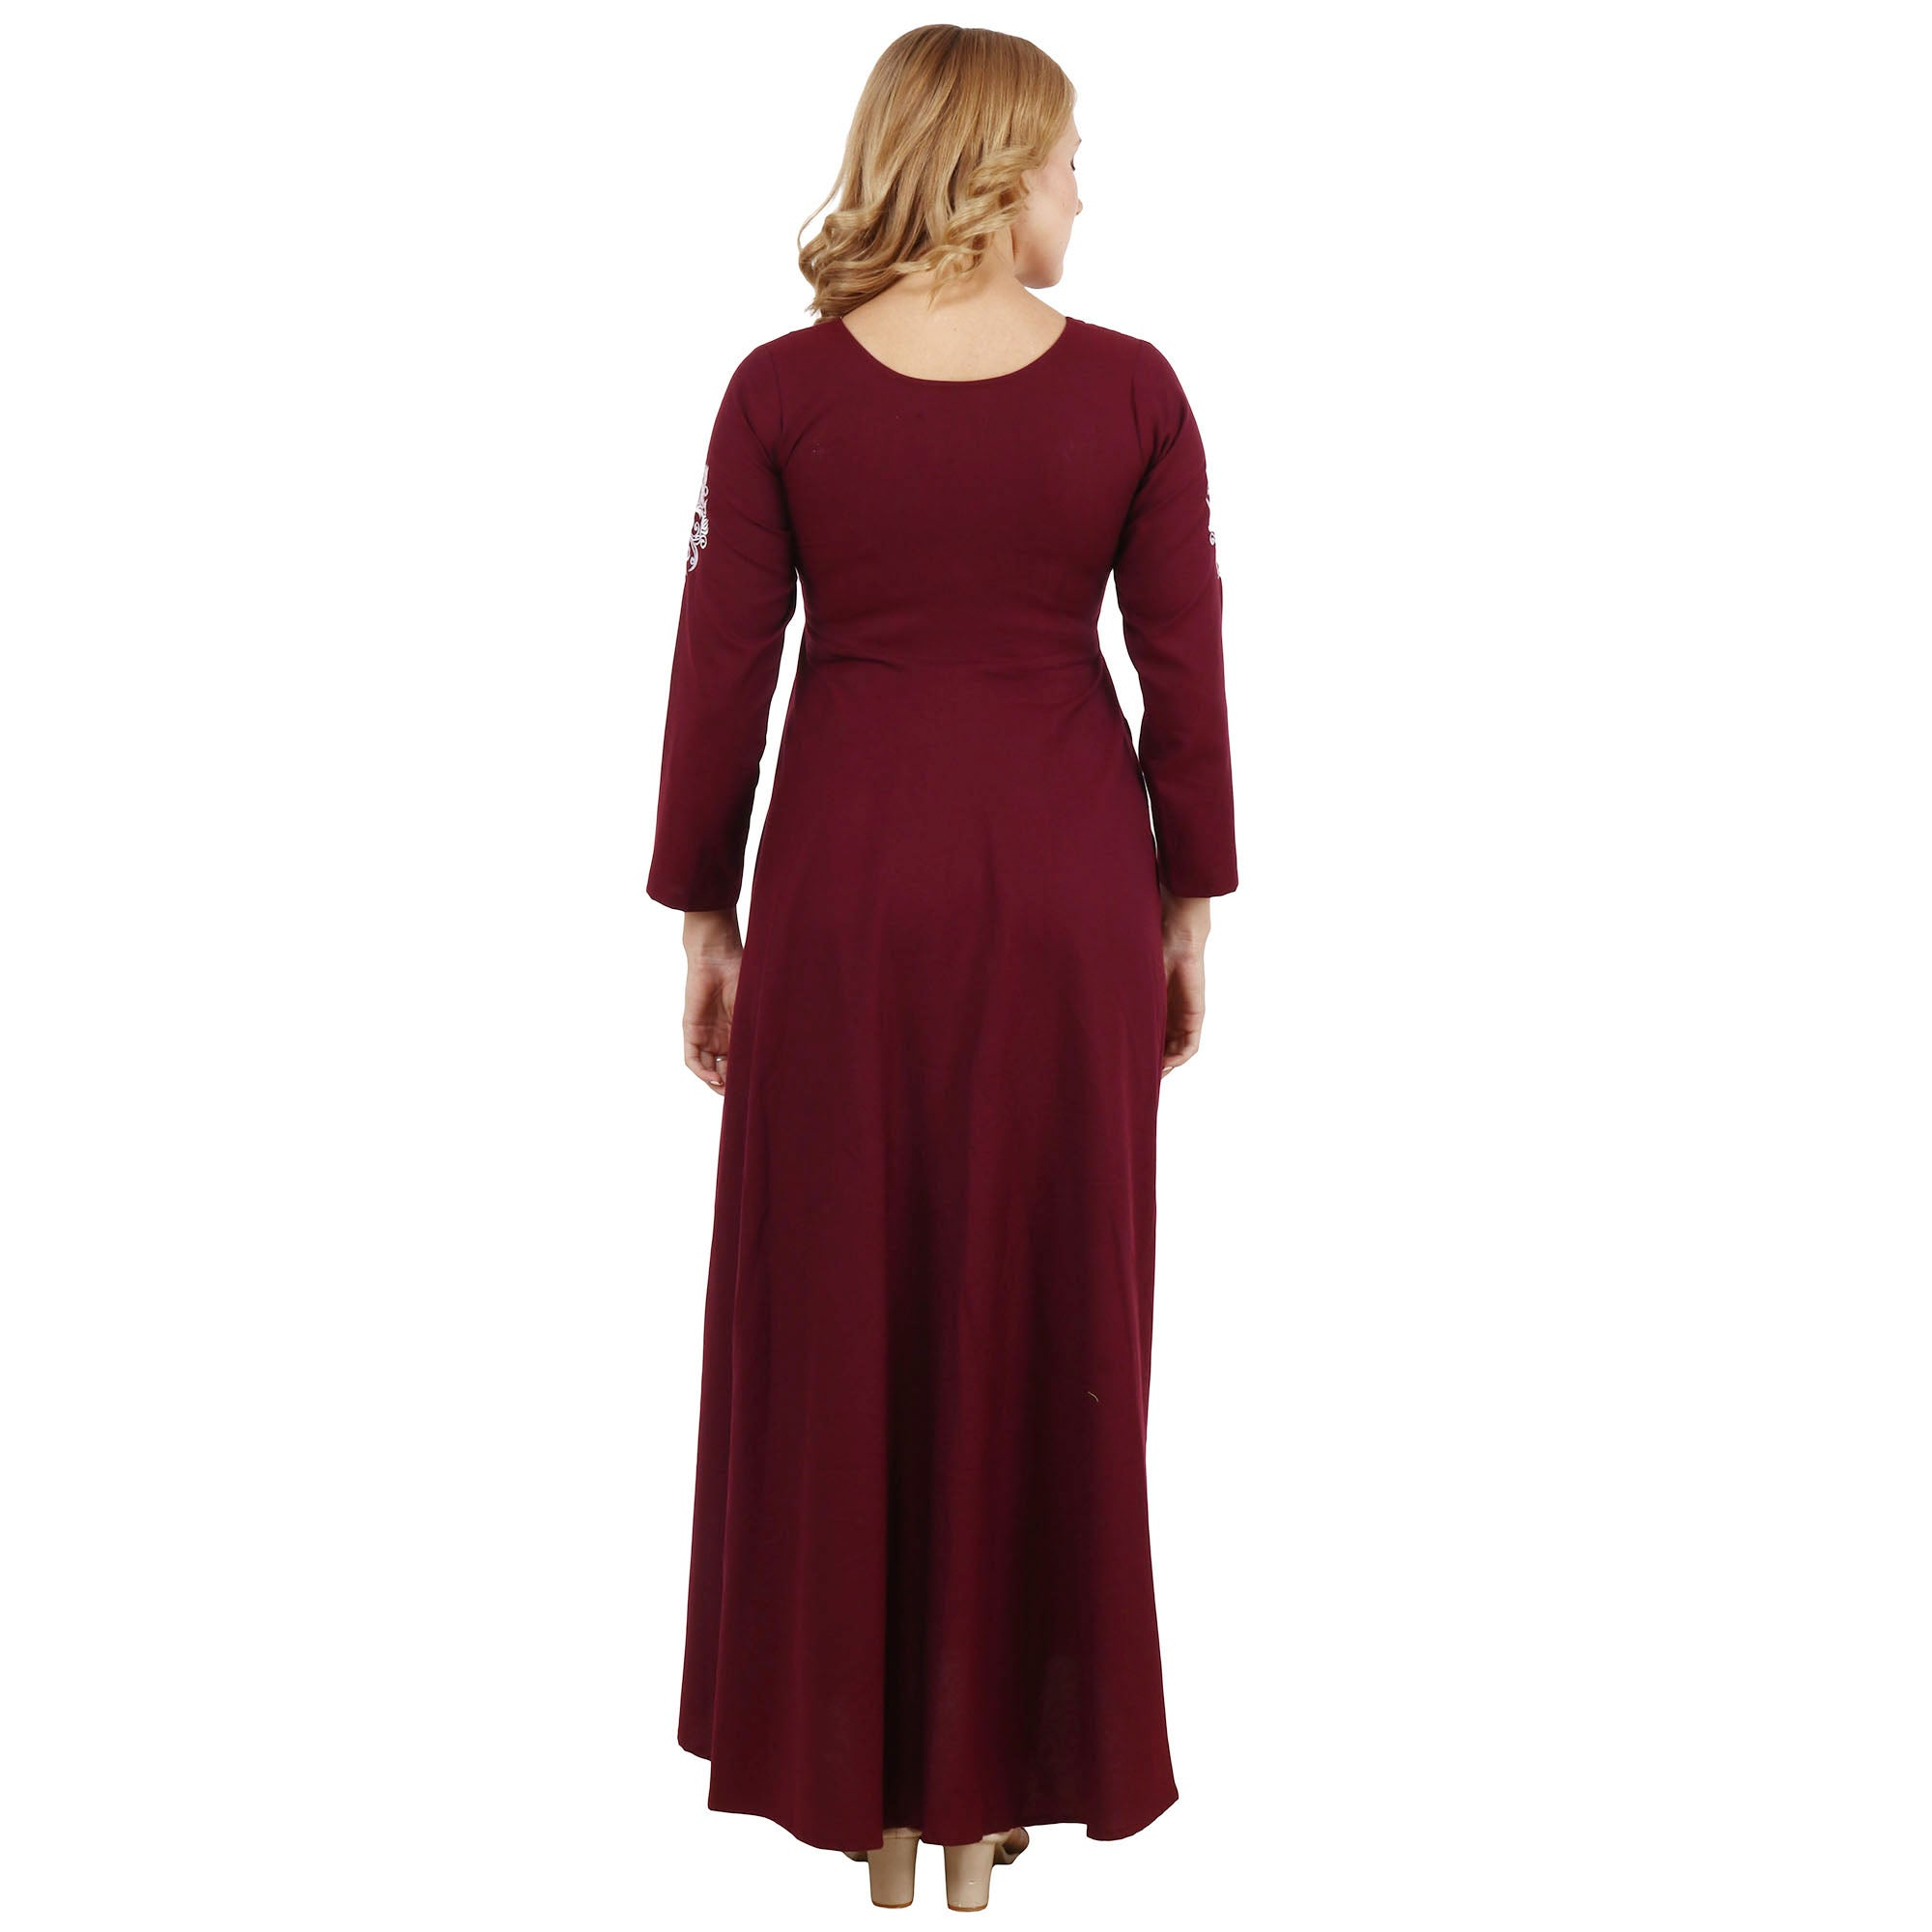 all size, all sizes maternity and nursing suits and dresses, ANKLE, apella, BELL, best online store, cotton maternity and nursing suit and dresses, FLARED, gowns, Maternity and nursing matern